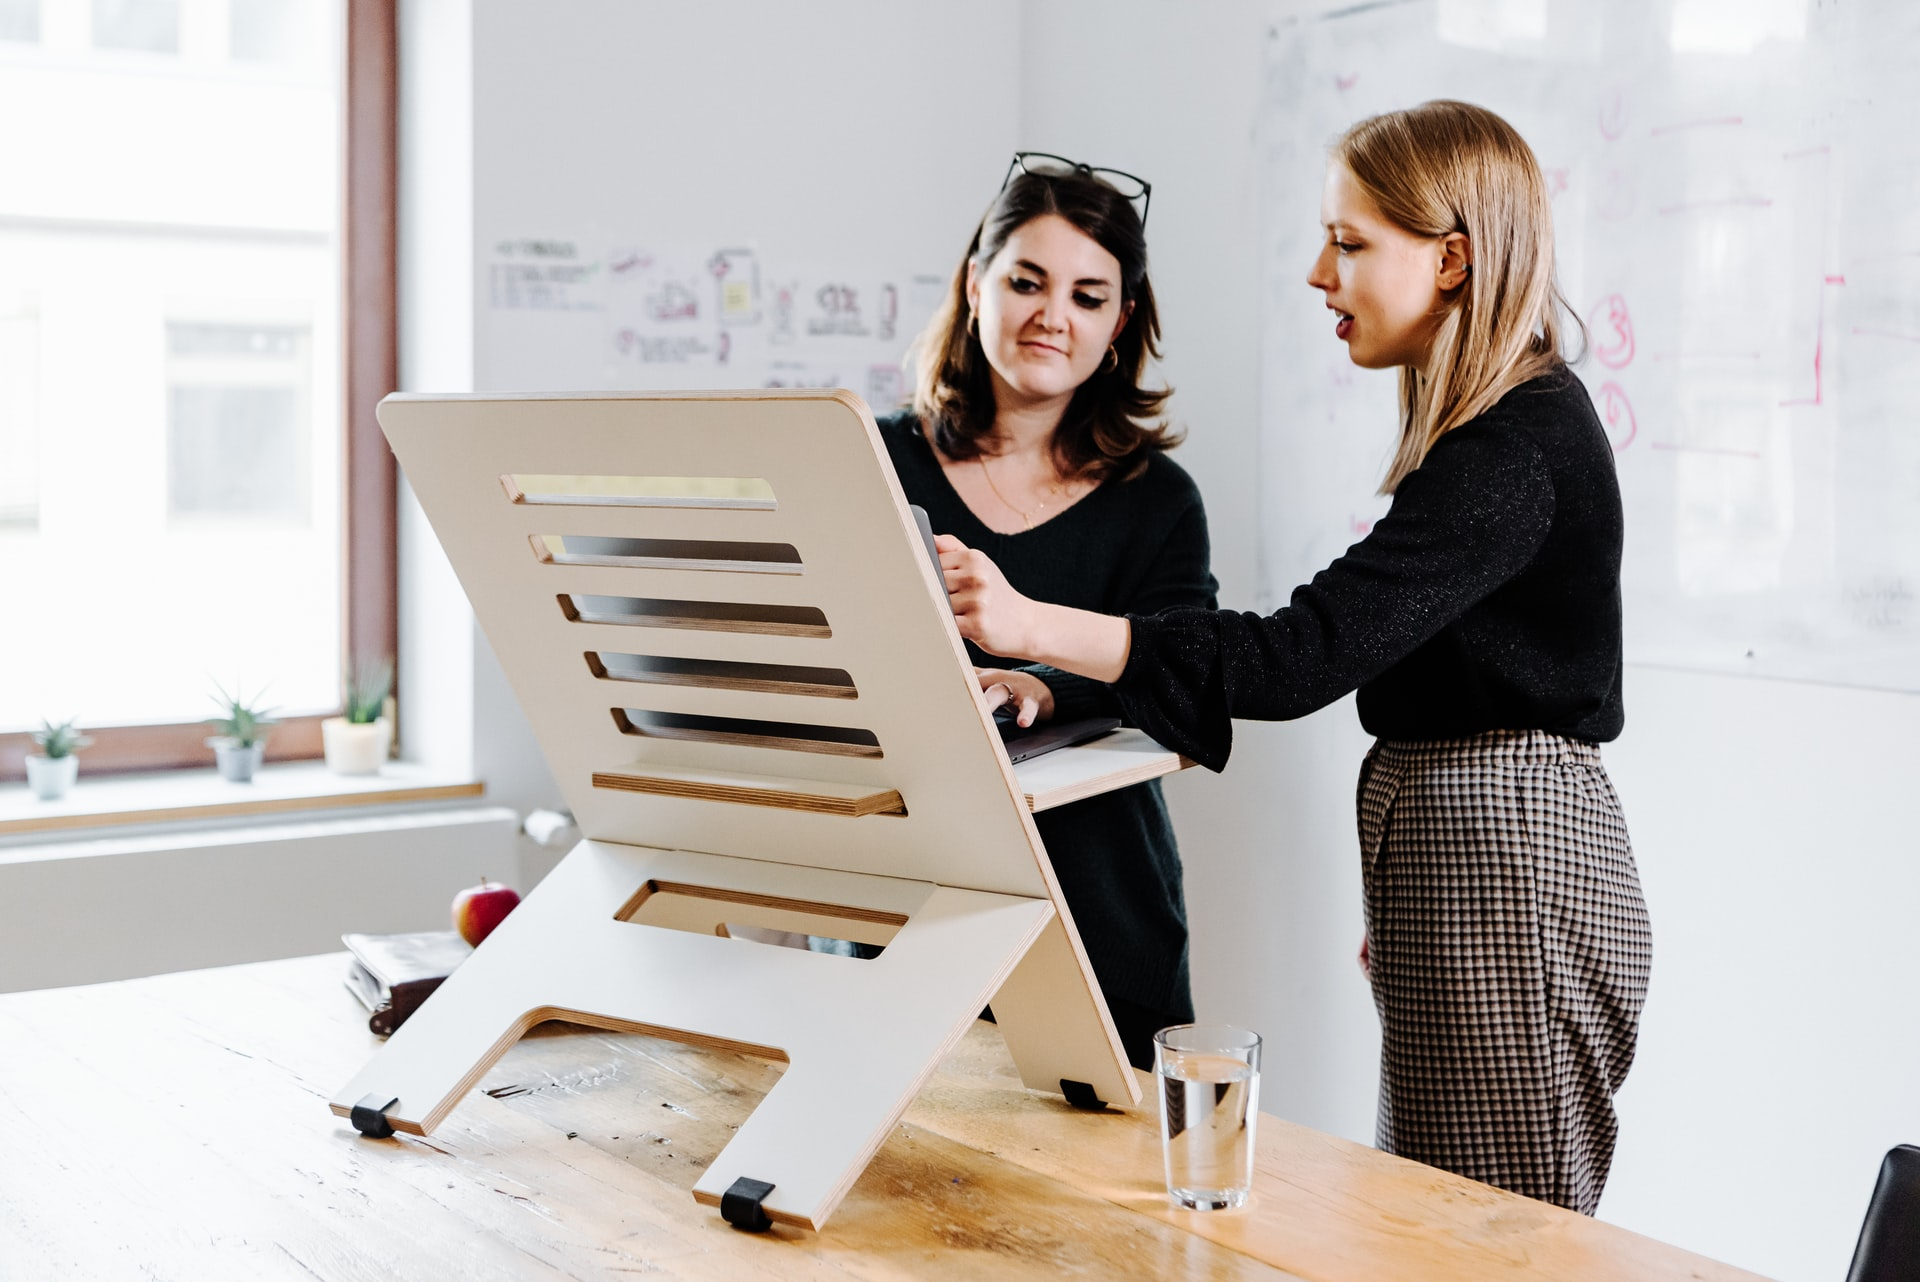 Two colleagues working at a standing desk. Photo by @standsome via Unsplash.